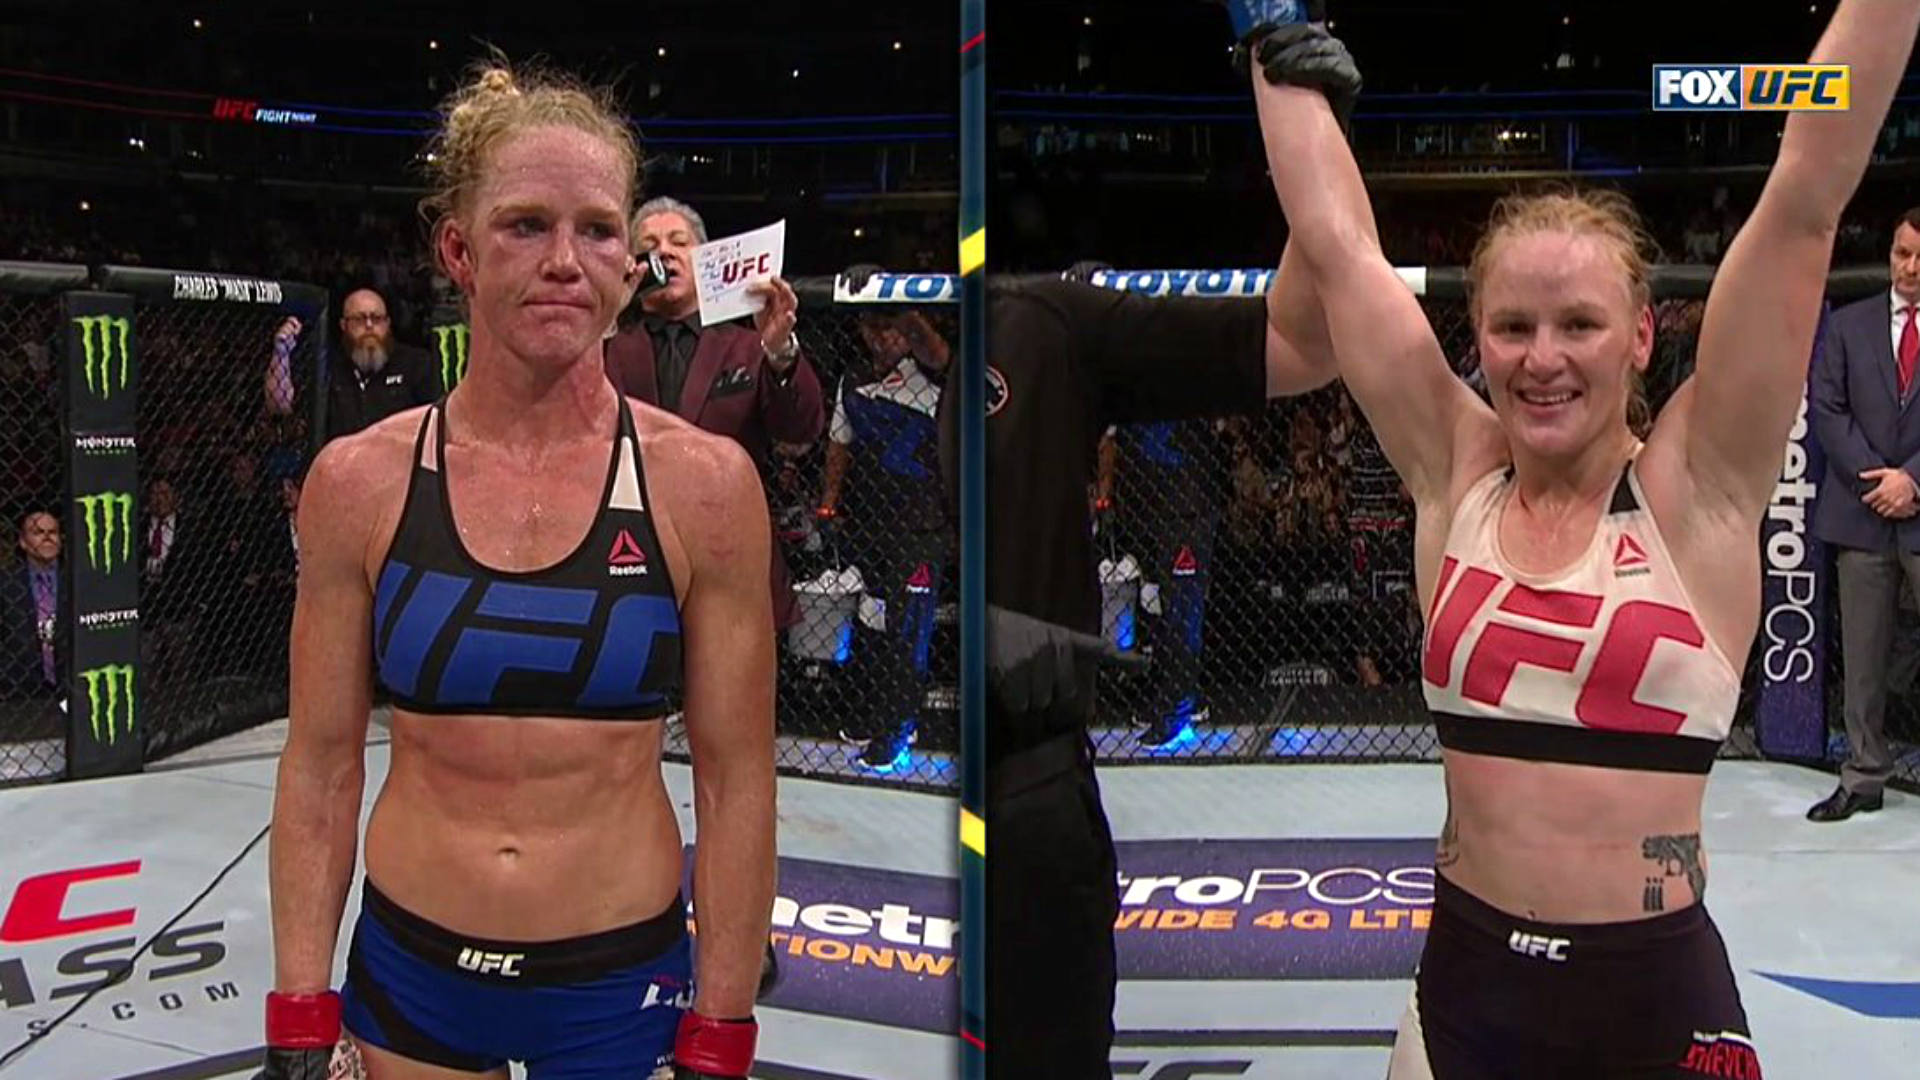 naked Holly holm